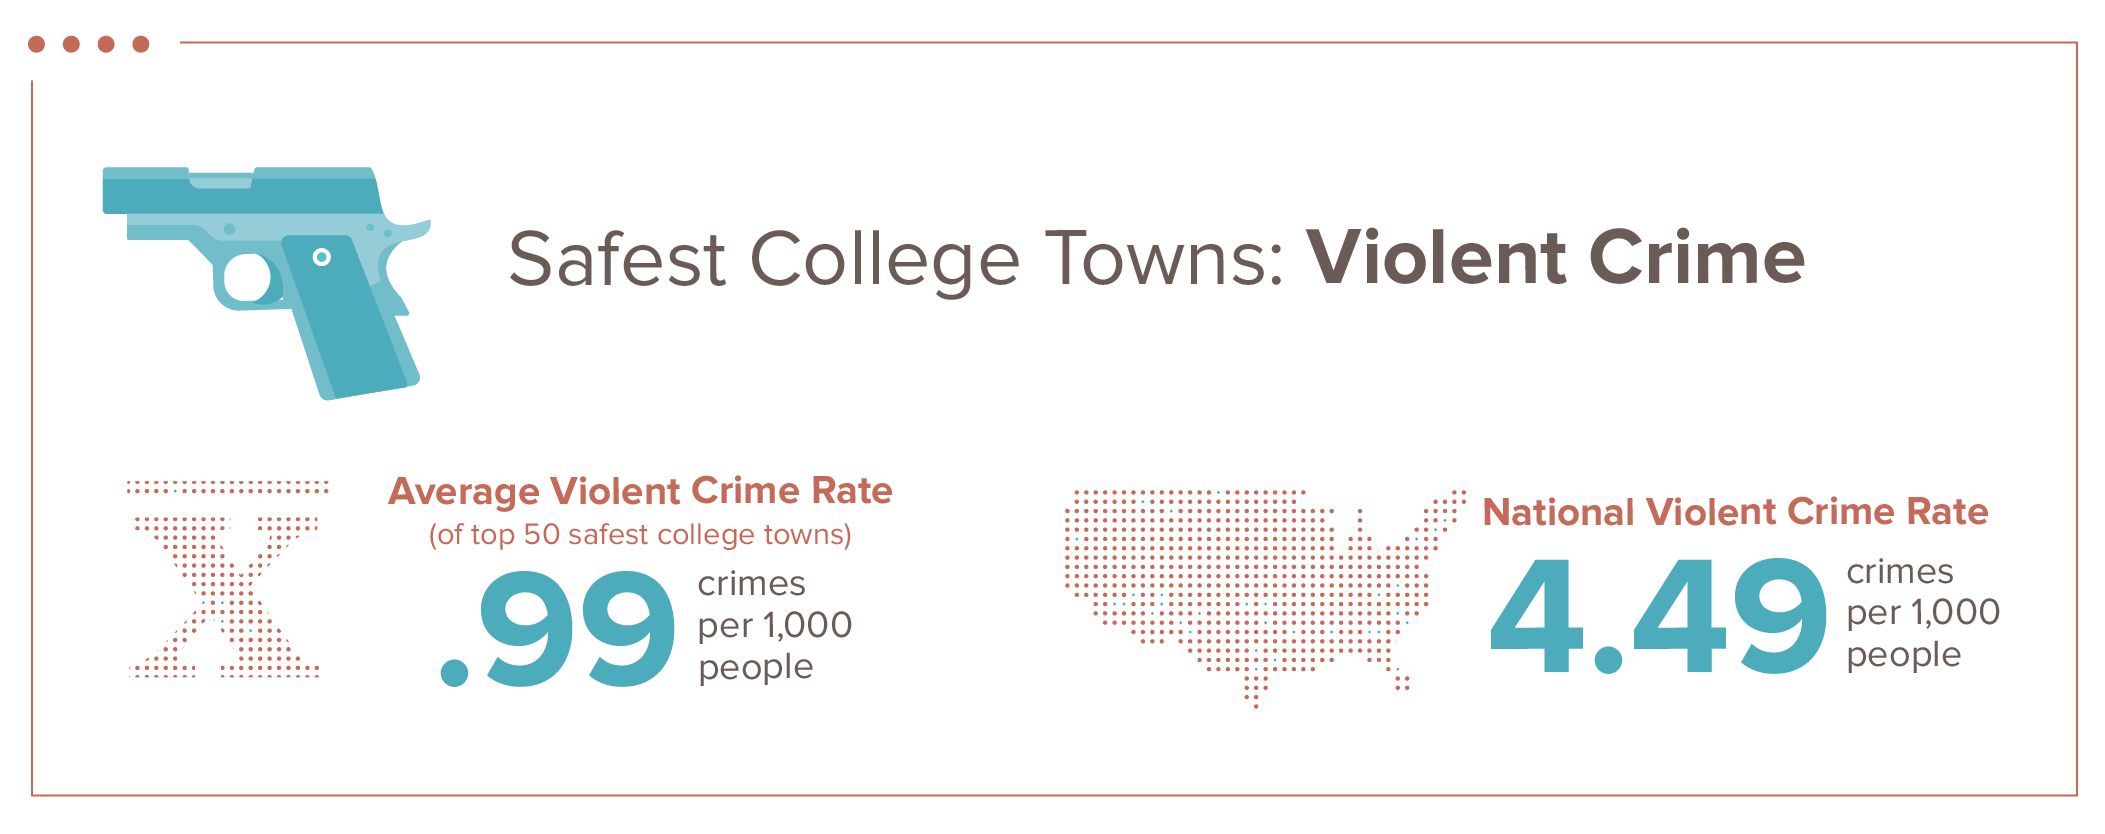 violent crime graphic showing rates per thousand people